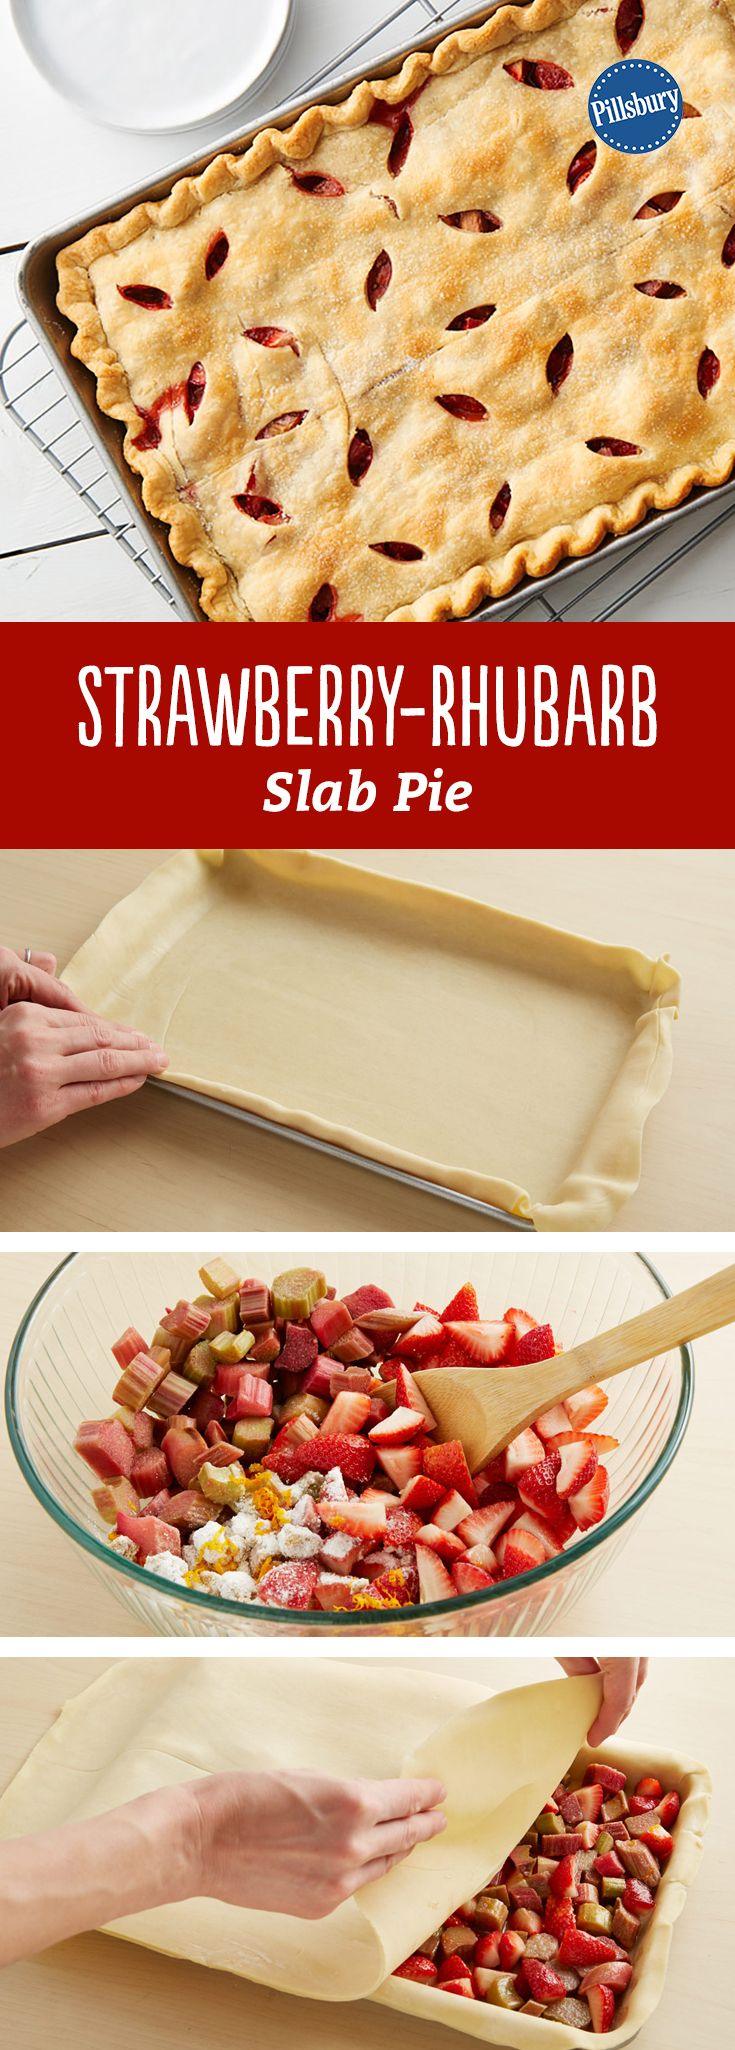 Summer is here! And this fresh Strawberry-Rhubarb Slab Pie will be you favorite dessert recipe to bring to BBQs, picnics and potlucks. It preps in just 20 minutes and serves 24 people!